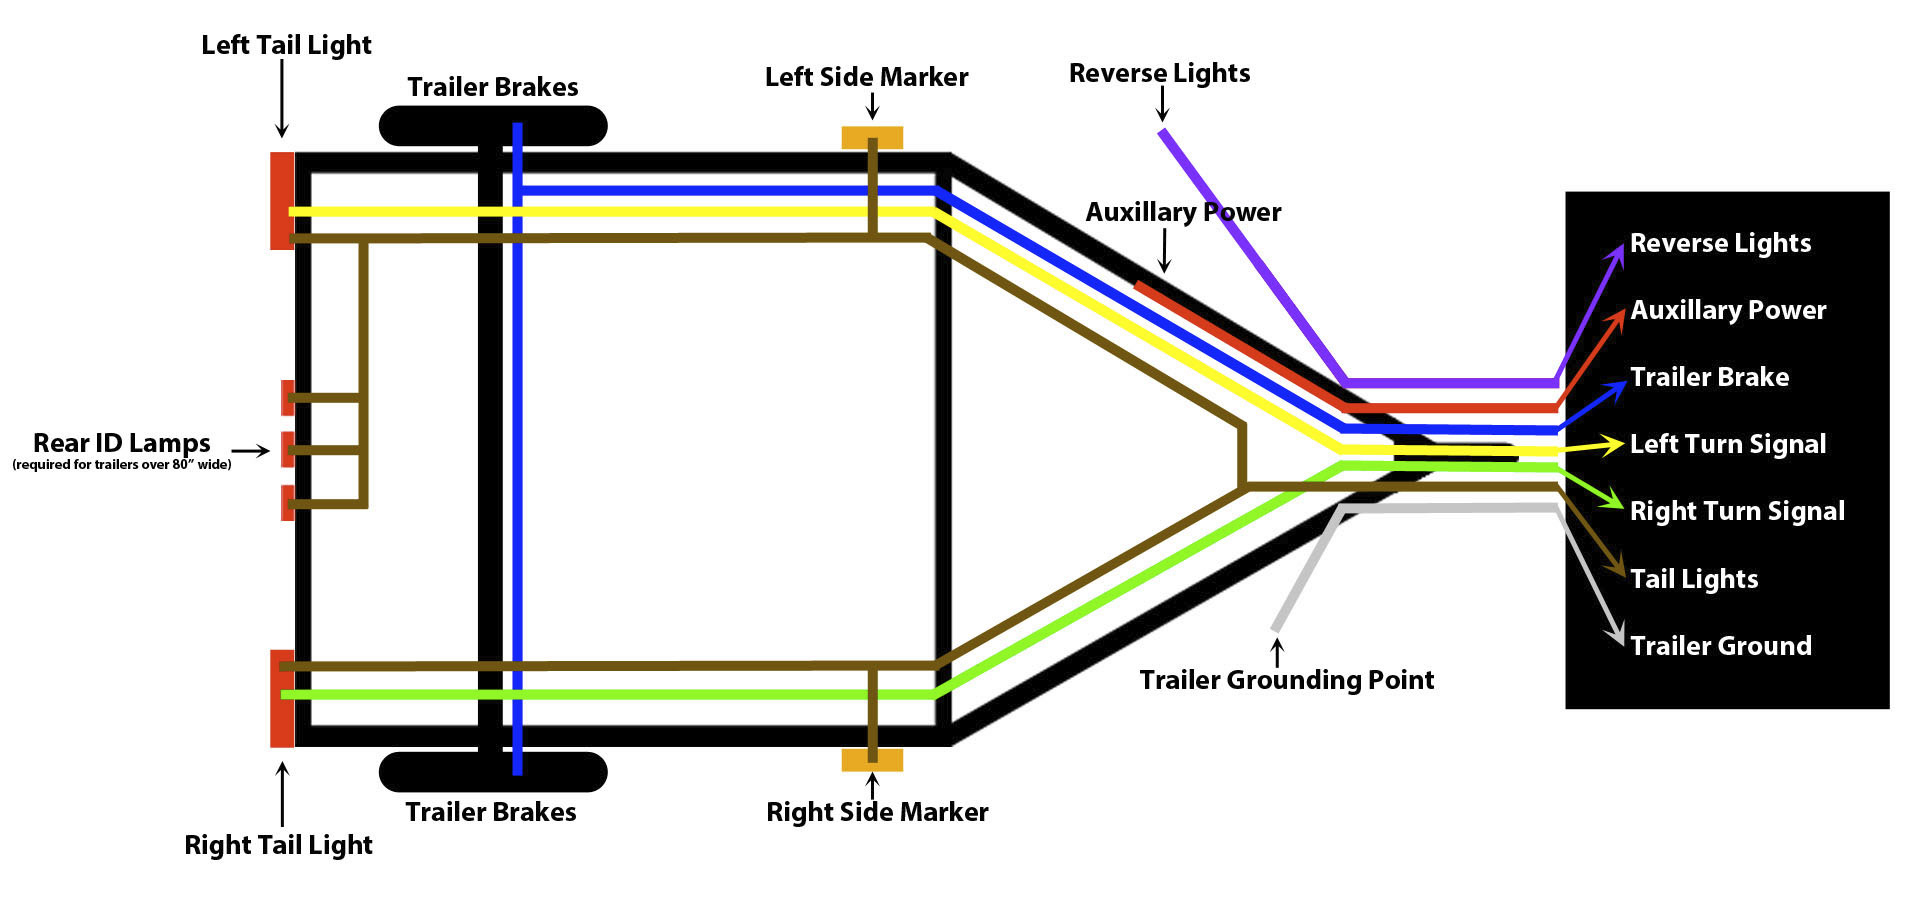 How To Wire Trailer Lights - Trailer Wiring Guide & Videos - 4 Plug Trailer Wiring Diagram